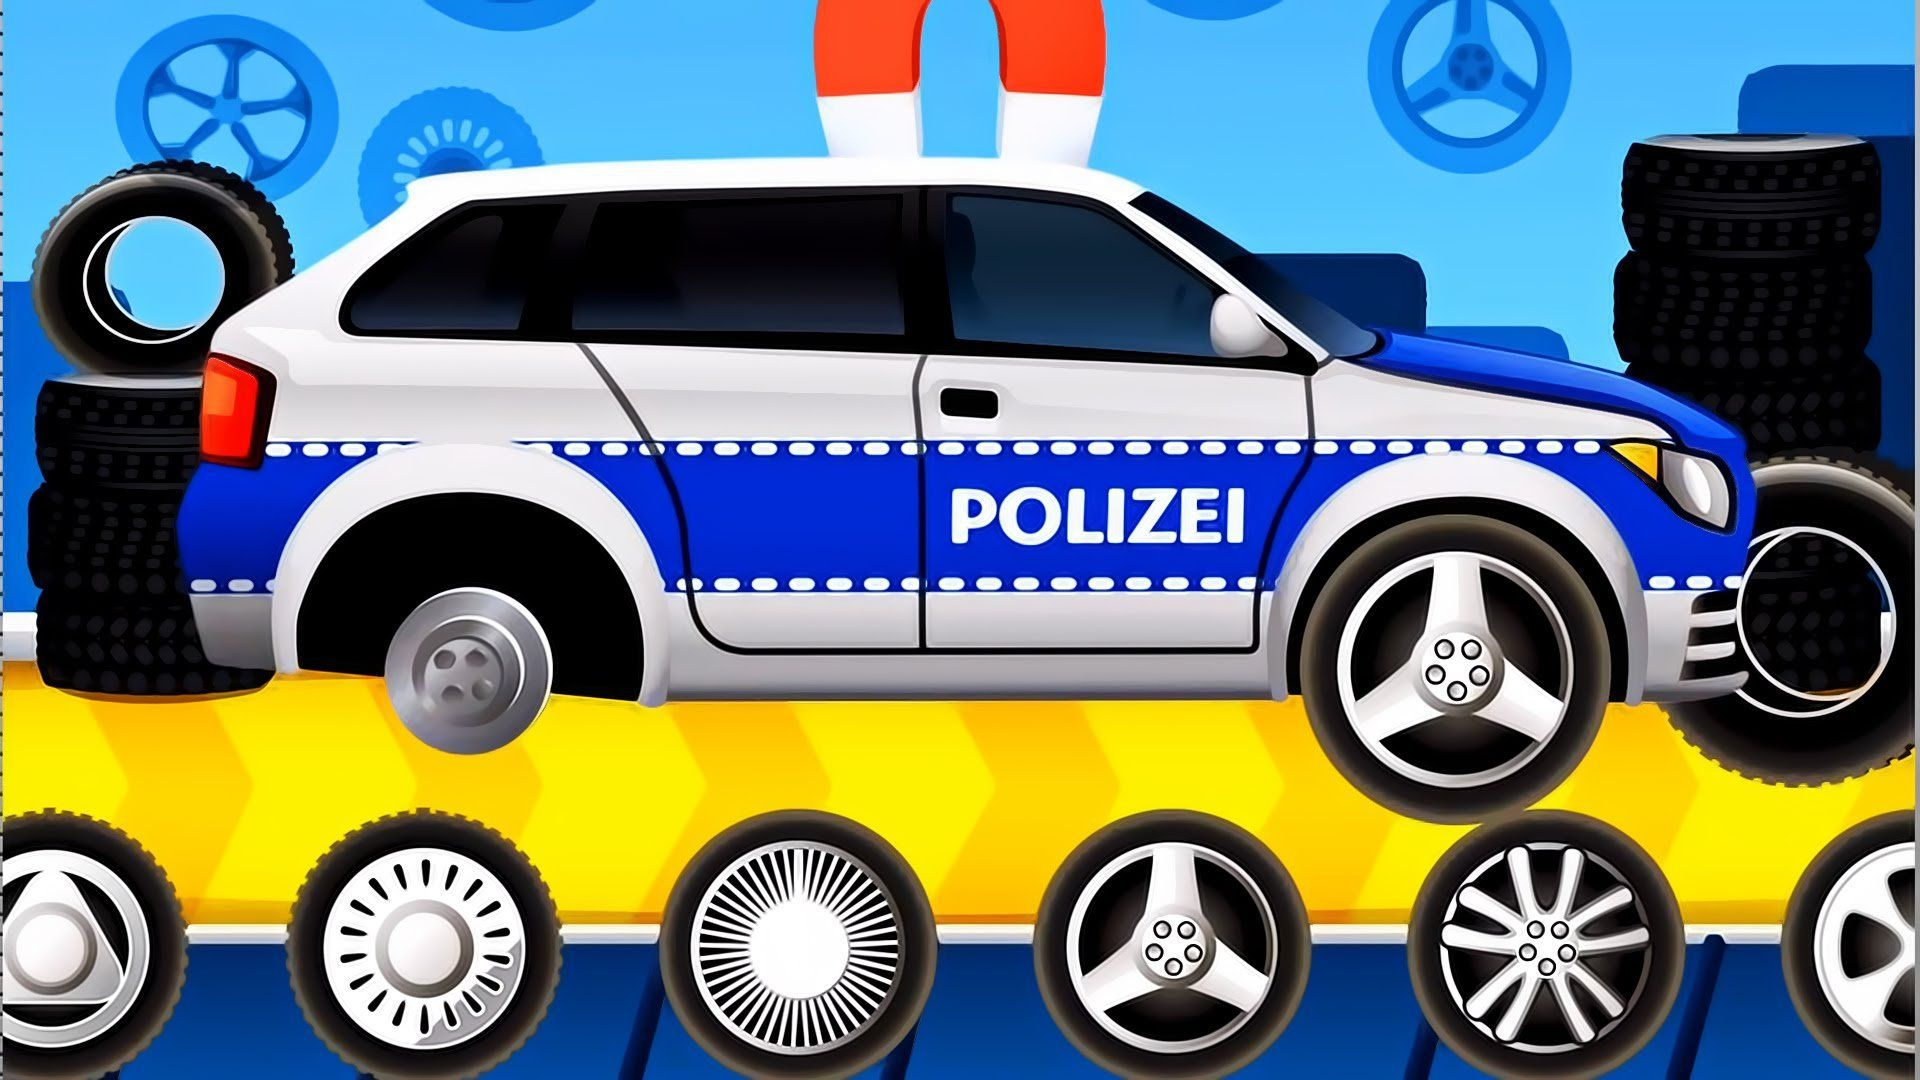 Dream Cars Factory Police Car Best iOS Game App for Kids